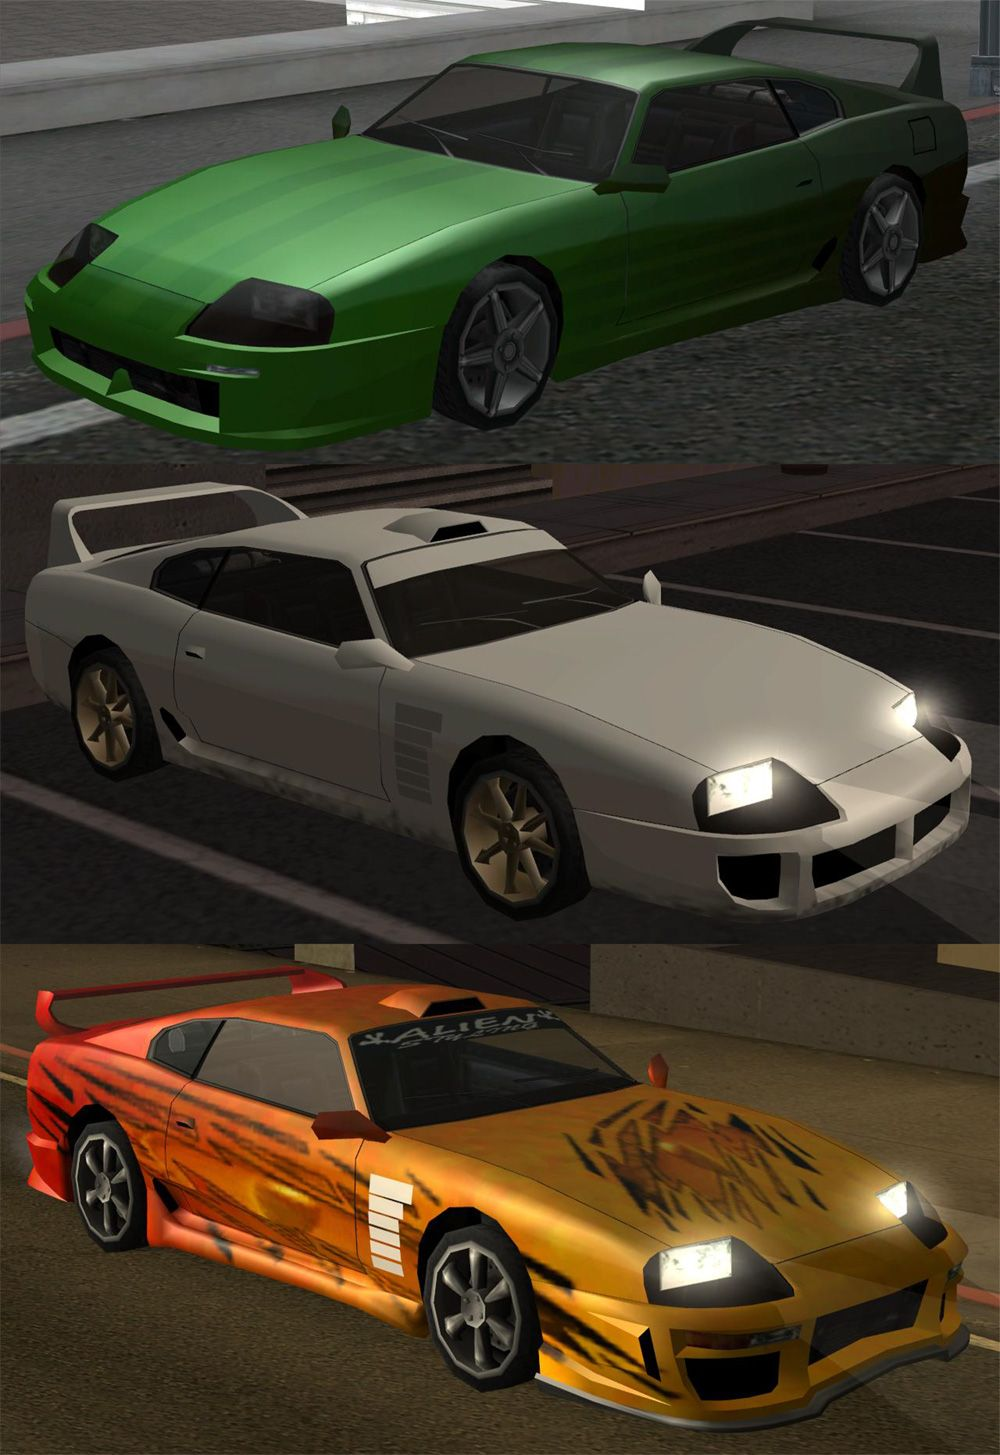 Modifications For The Jester From Gta Sanandreas Gta Cars Cool Sports Cars Car